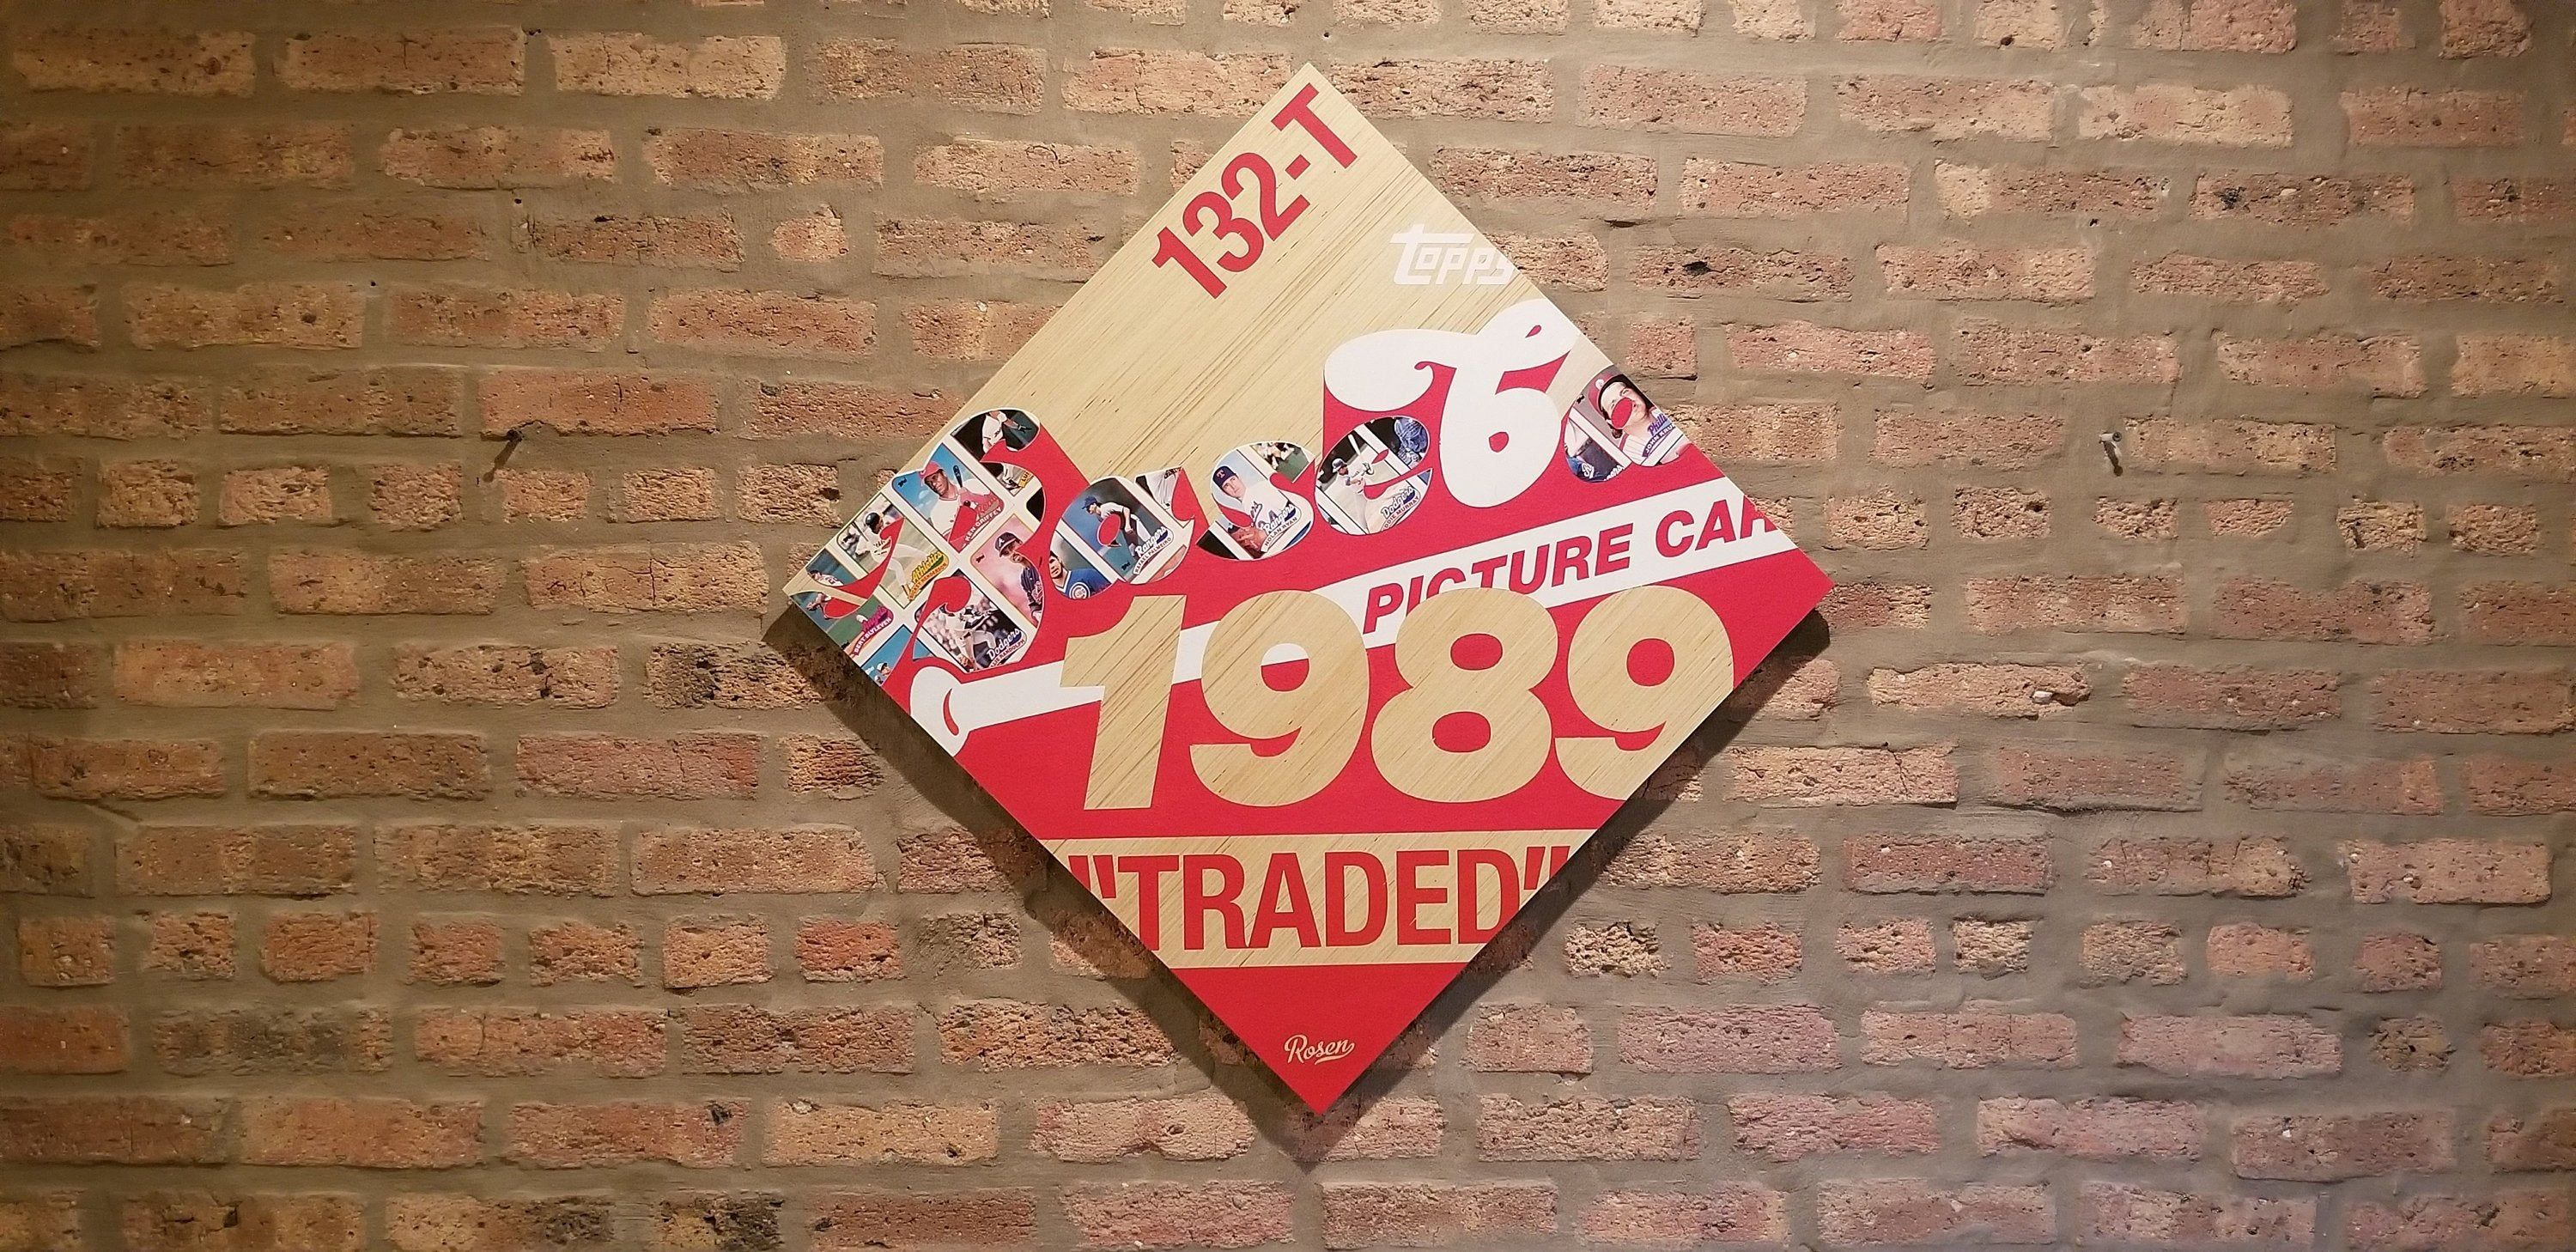 1989 topps traded set card art iconic artwork old